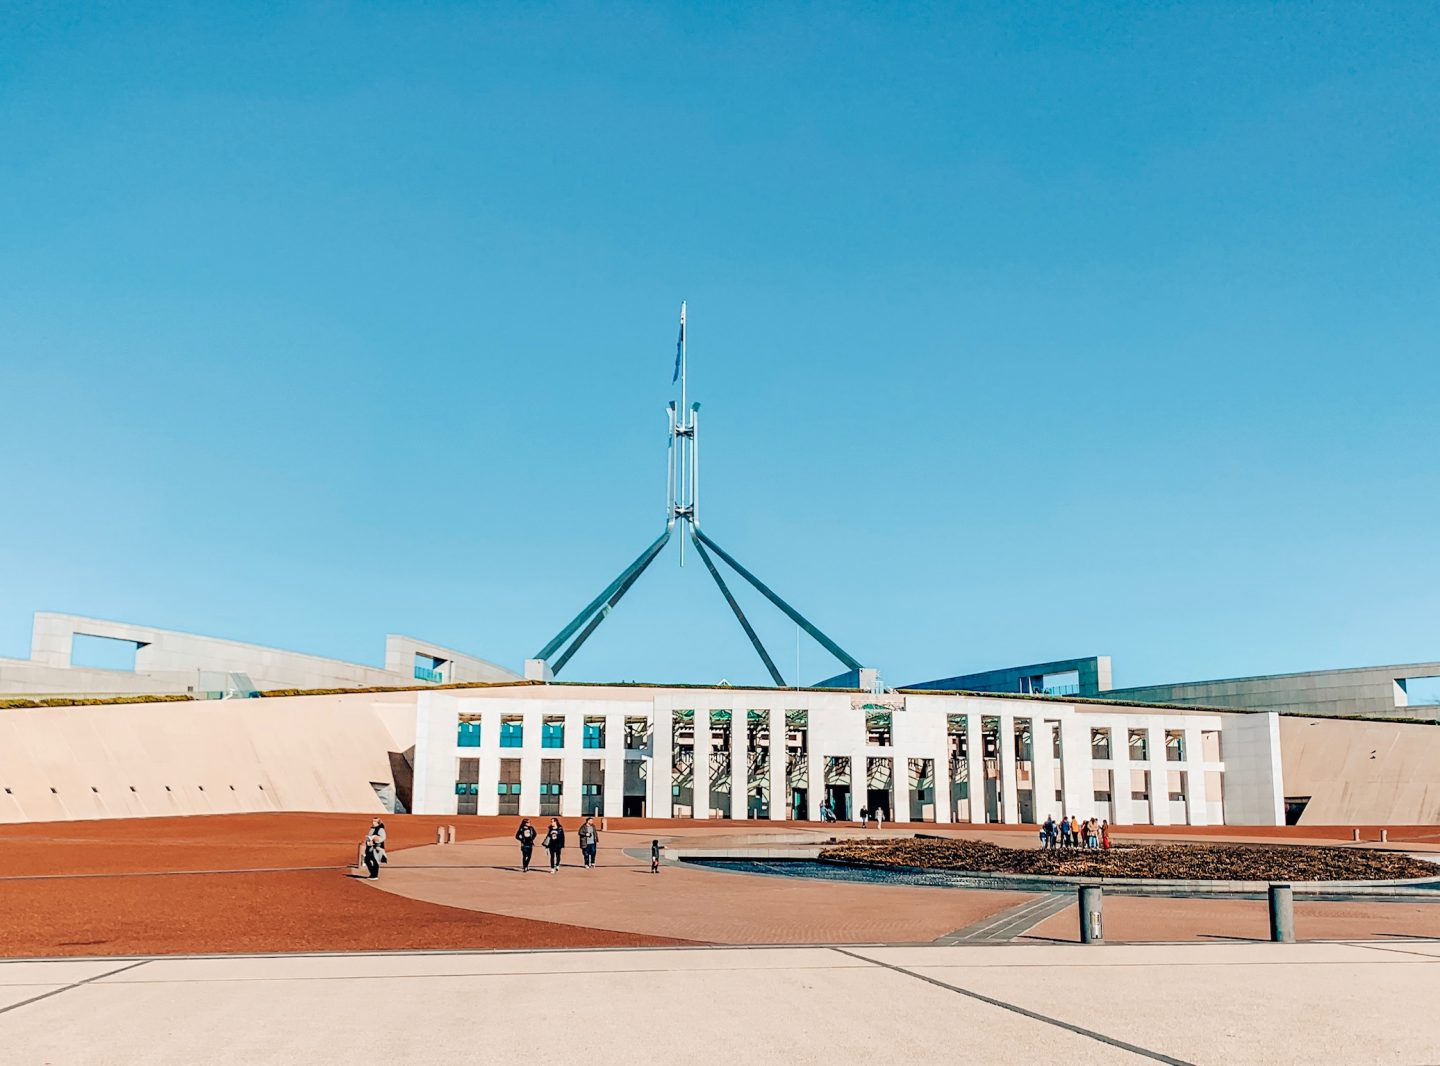 Photo of Australia's Parliament building in Canberra, Australia.